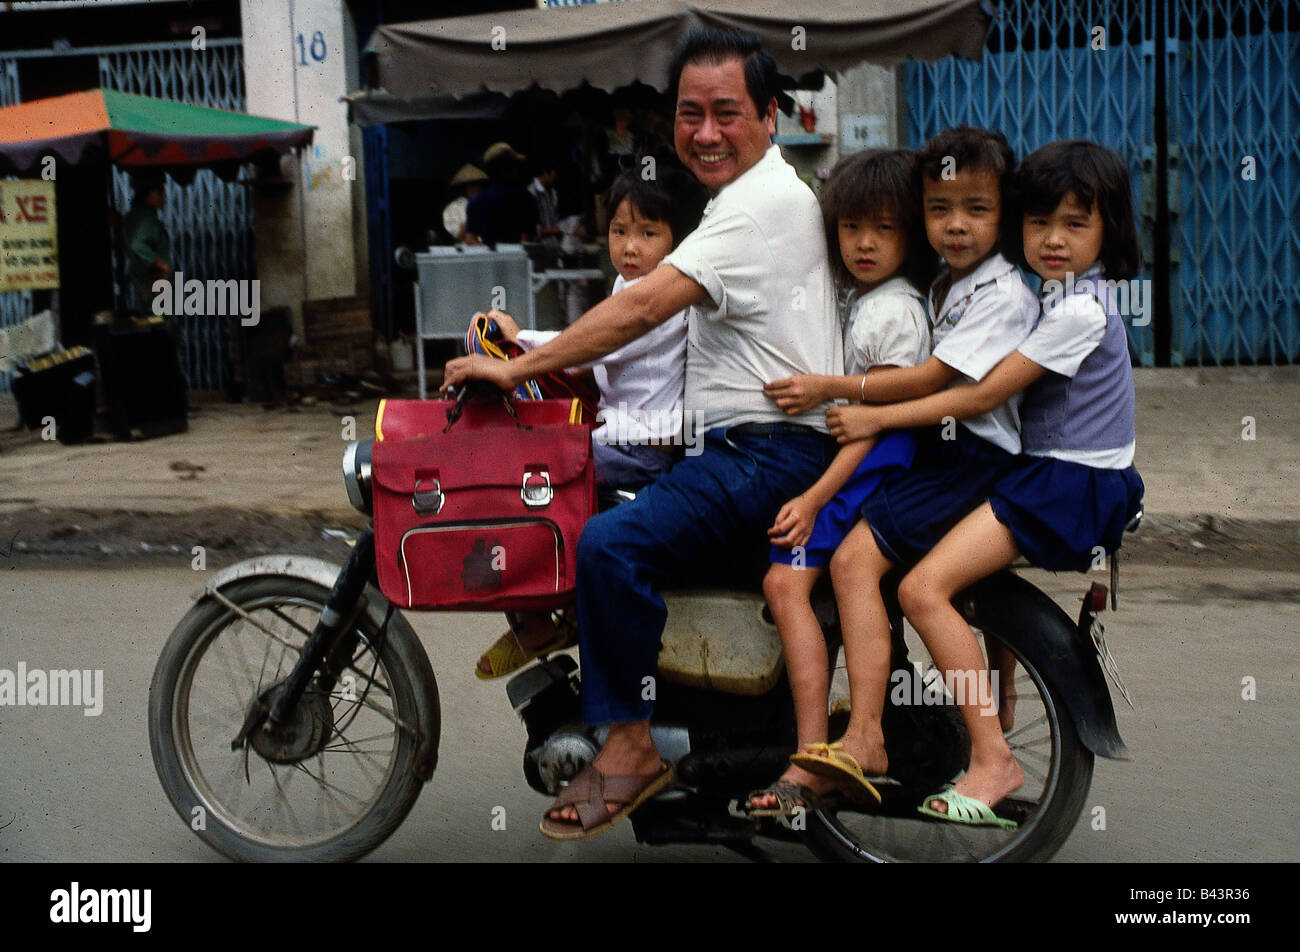 geography / travel, Vietnam, people, father with four children on a motor scooter, Saigon, children, overloaded, Stock Photo